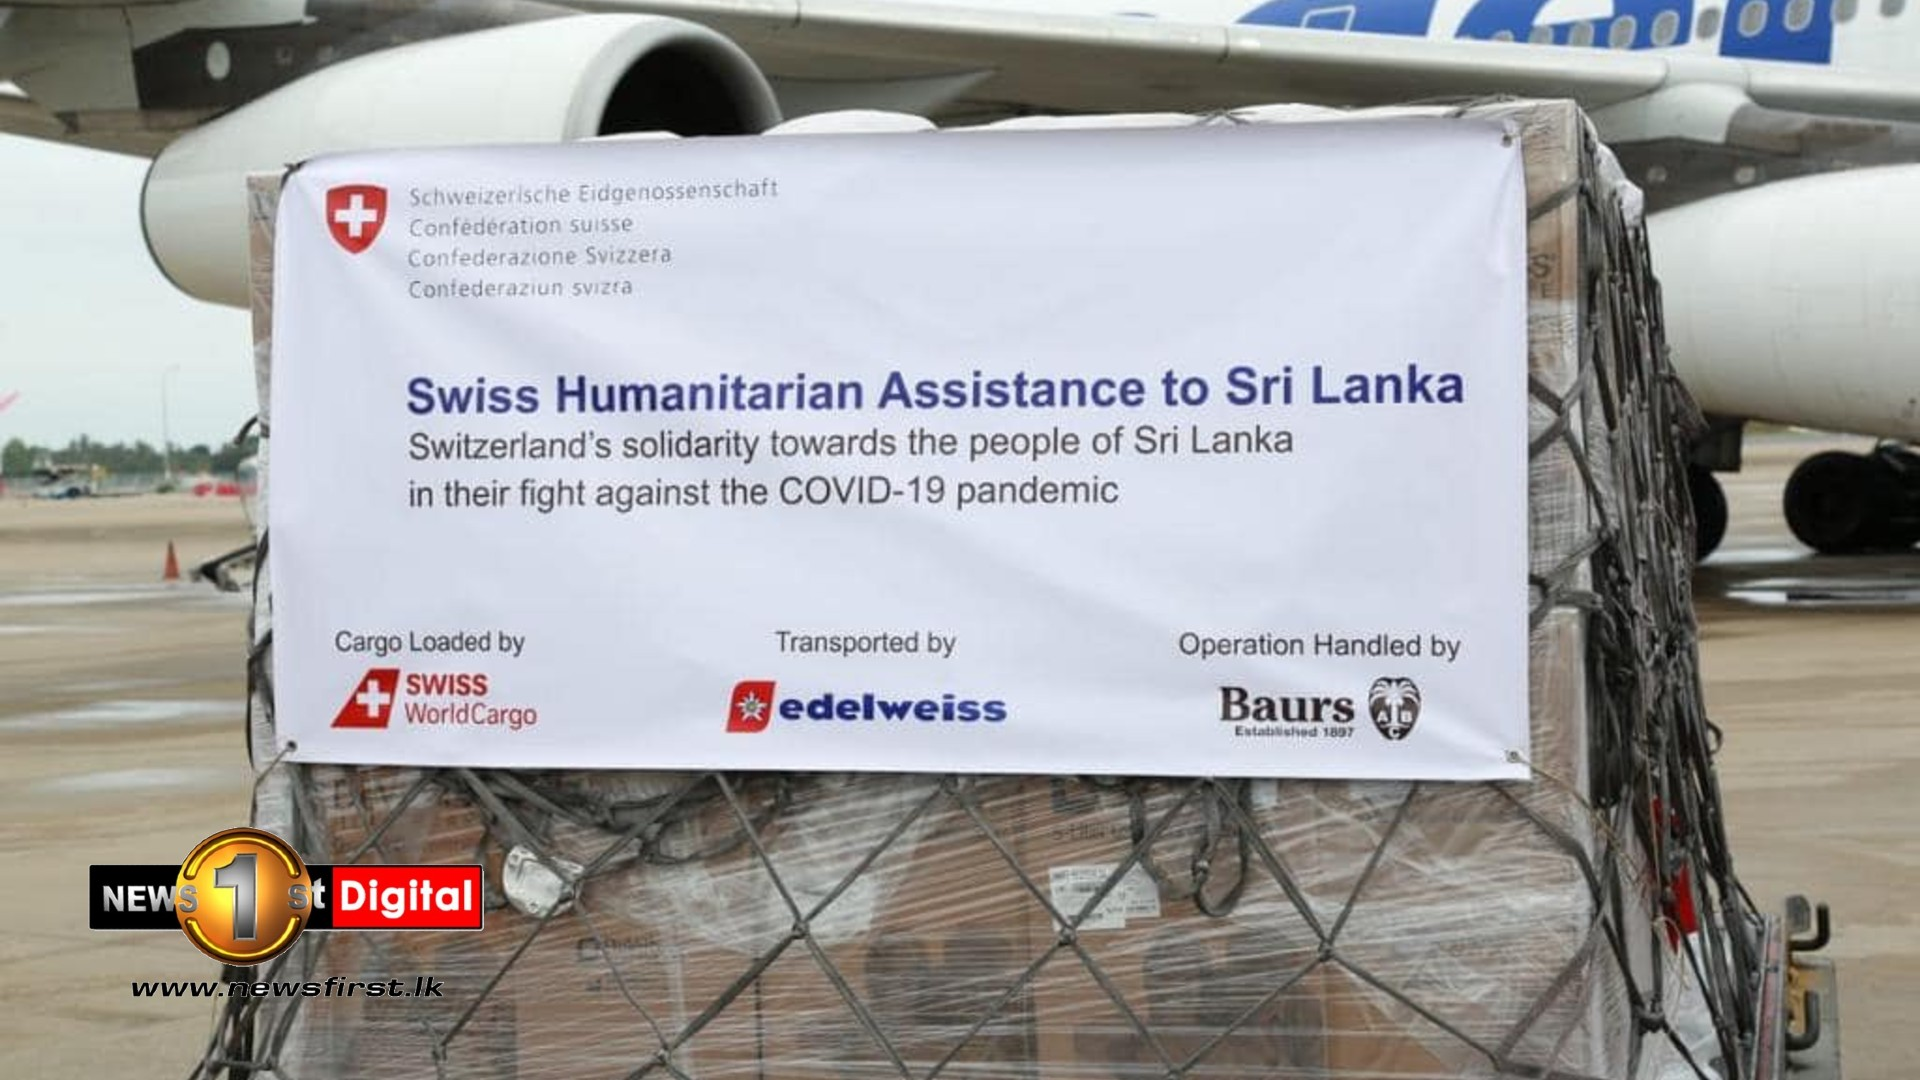 Switzerland sends Rs. 800 Mn worth medical supplies to fight COVID